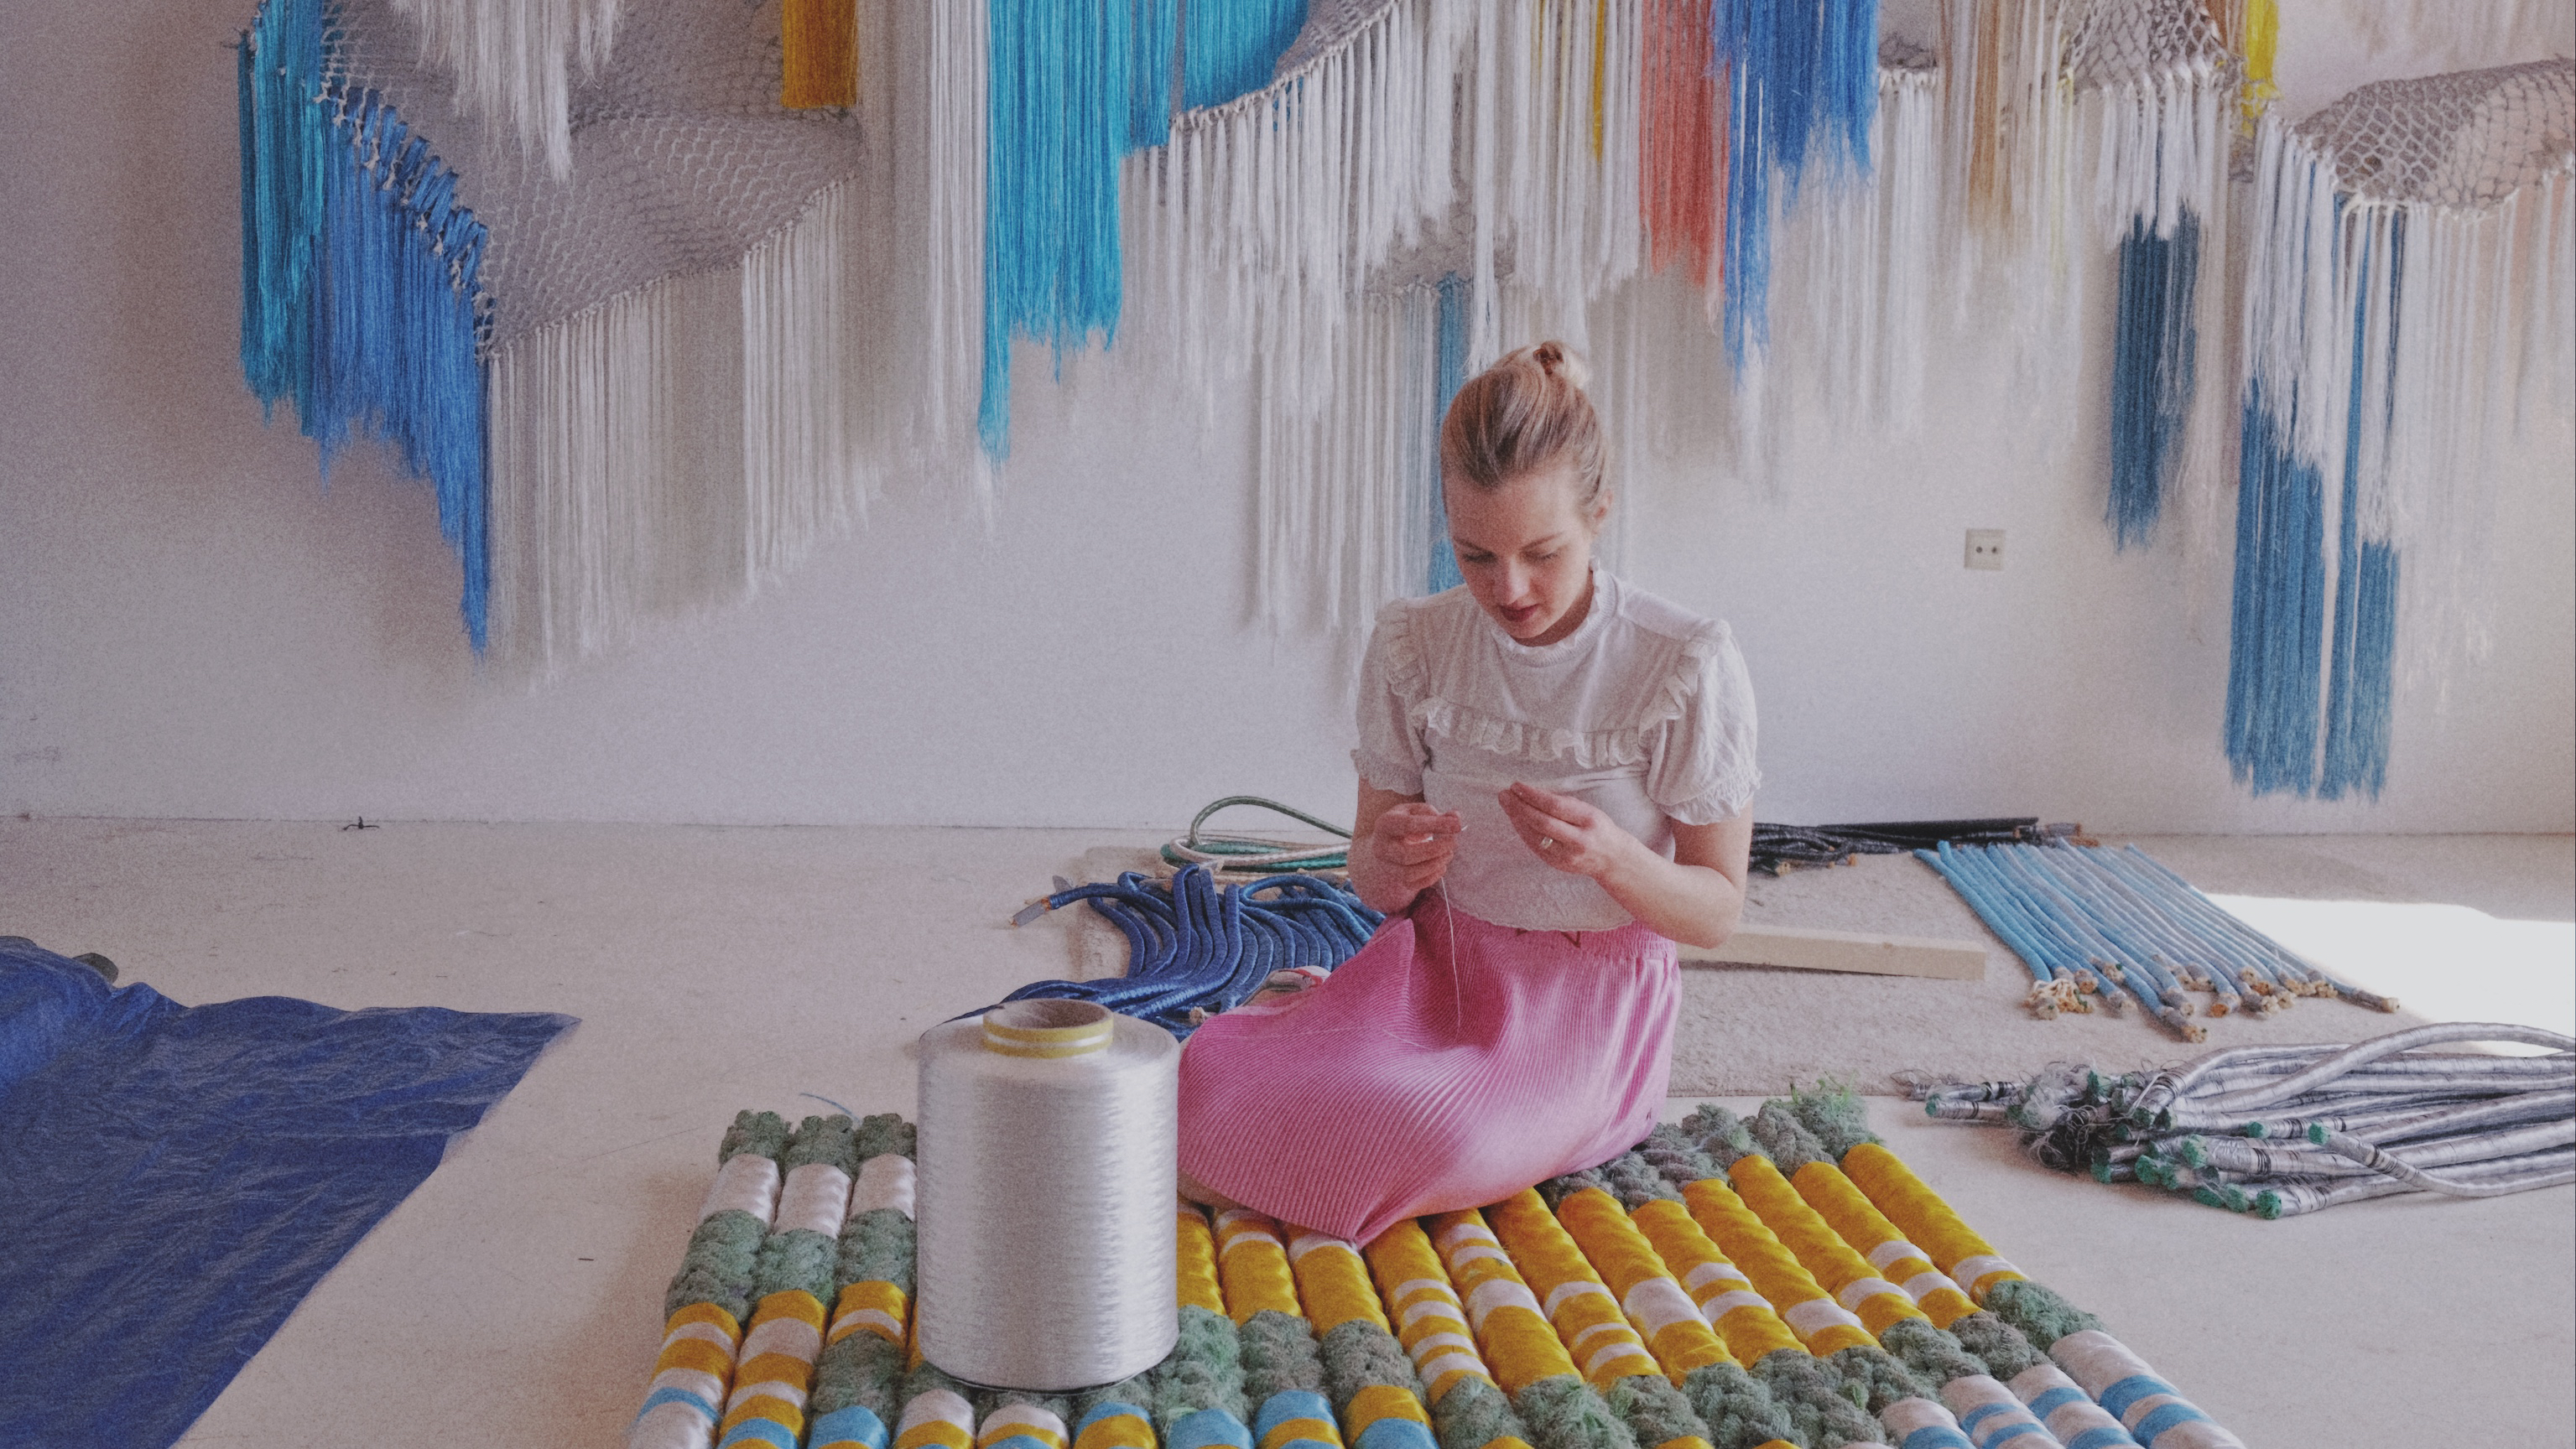 Meet the Maker: Joana Schneide